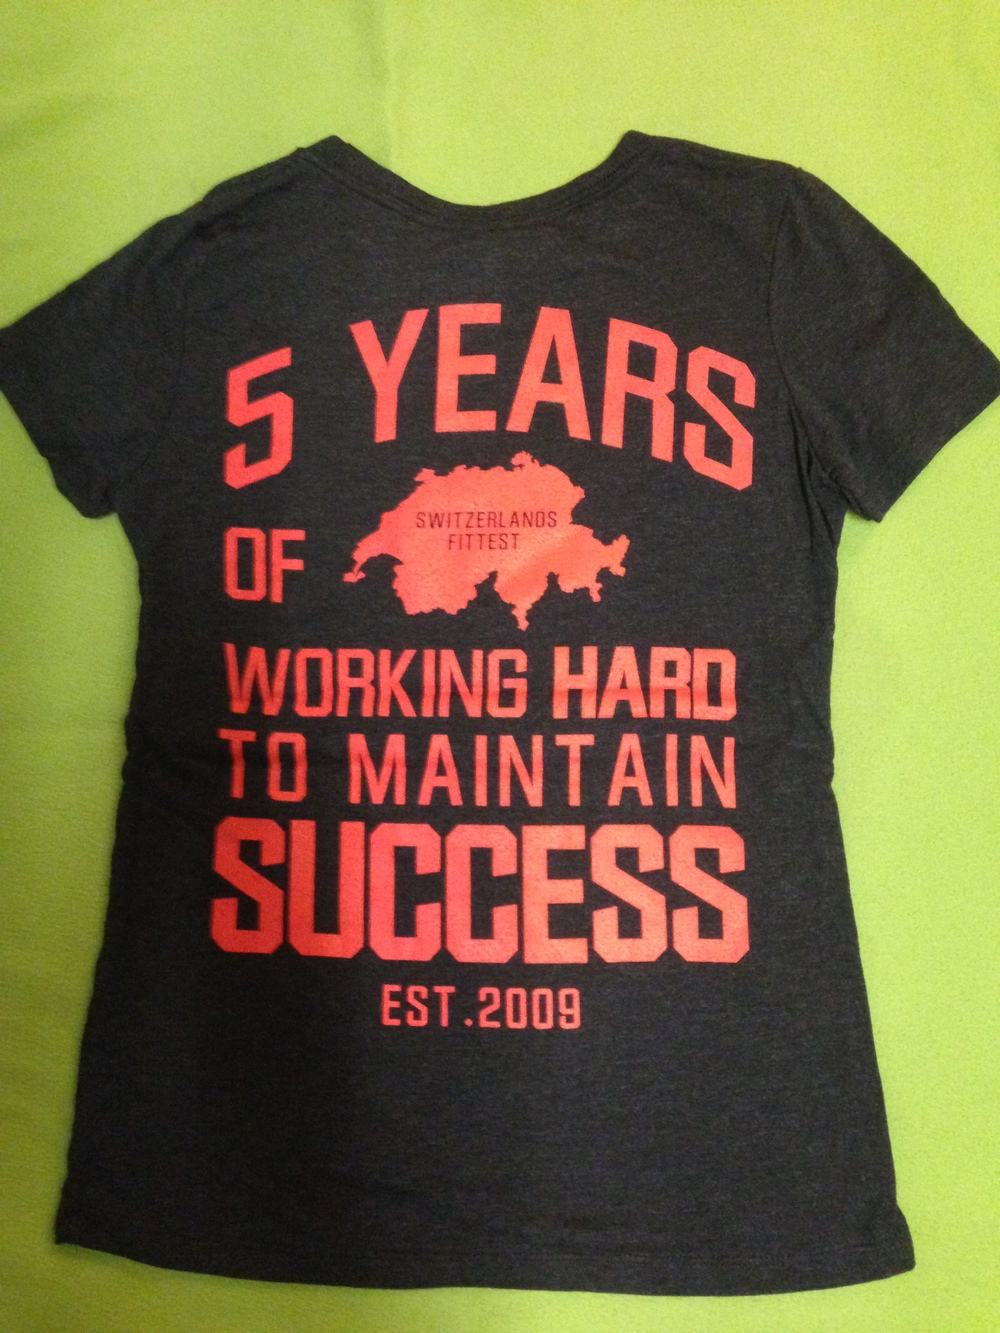 Get our 5 years special edition shirts!